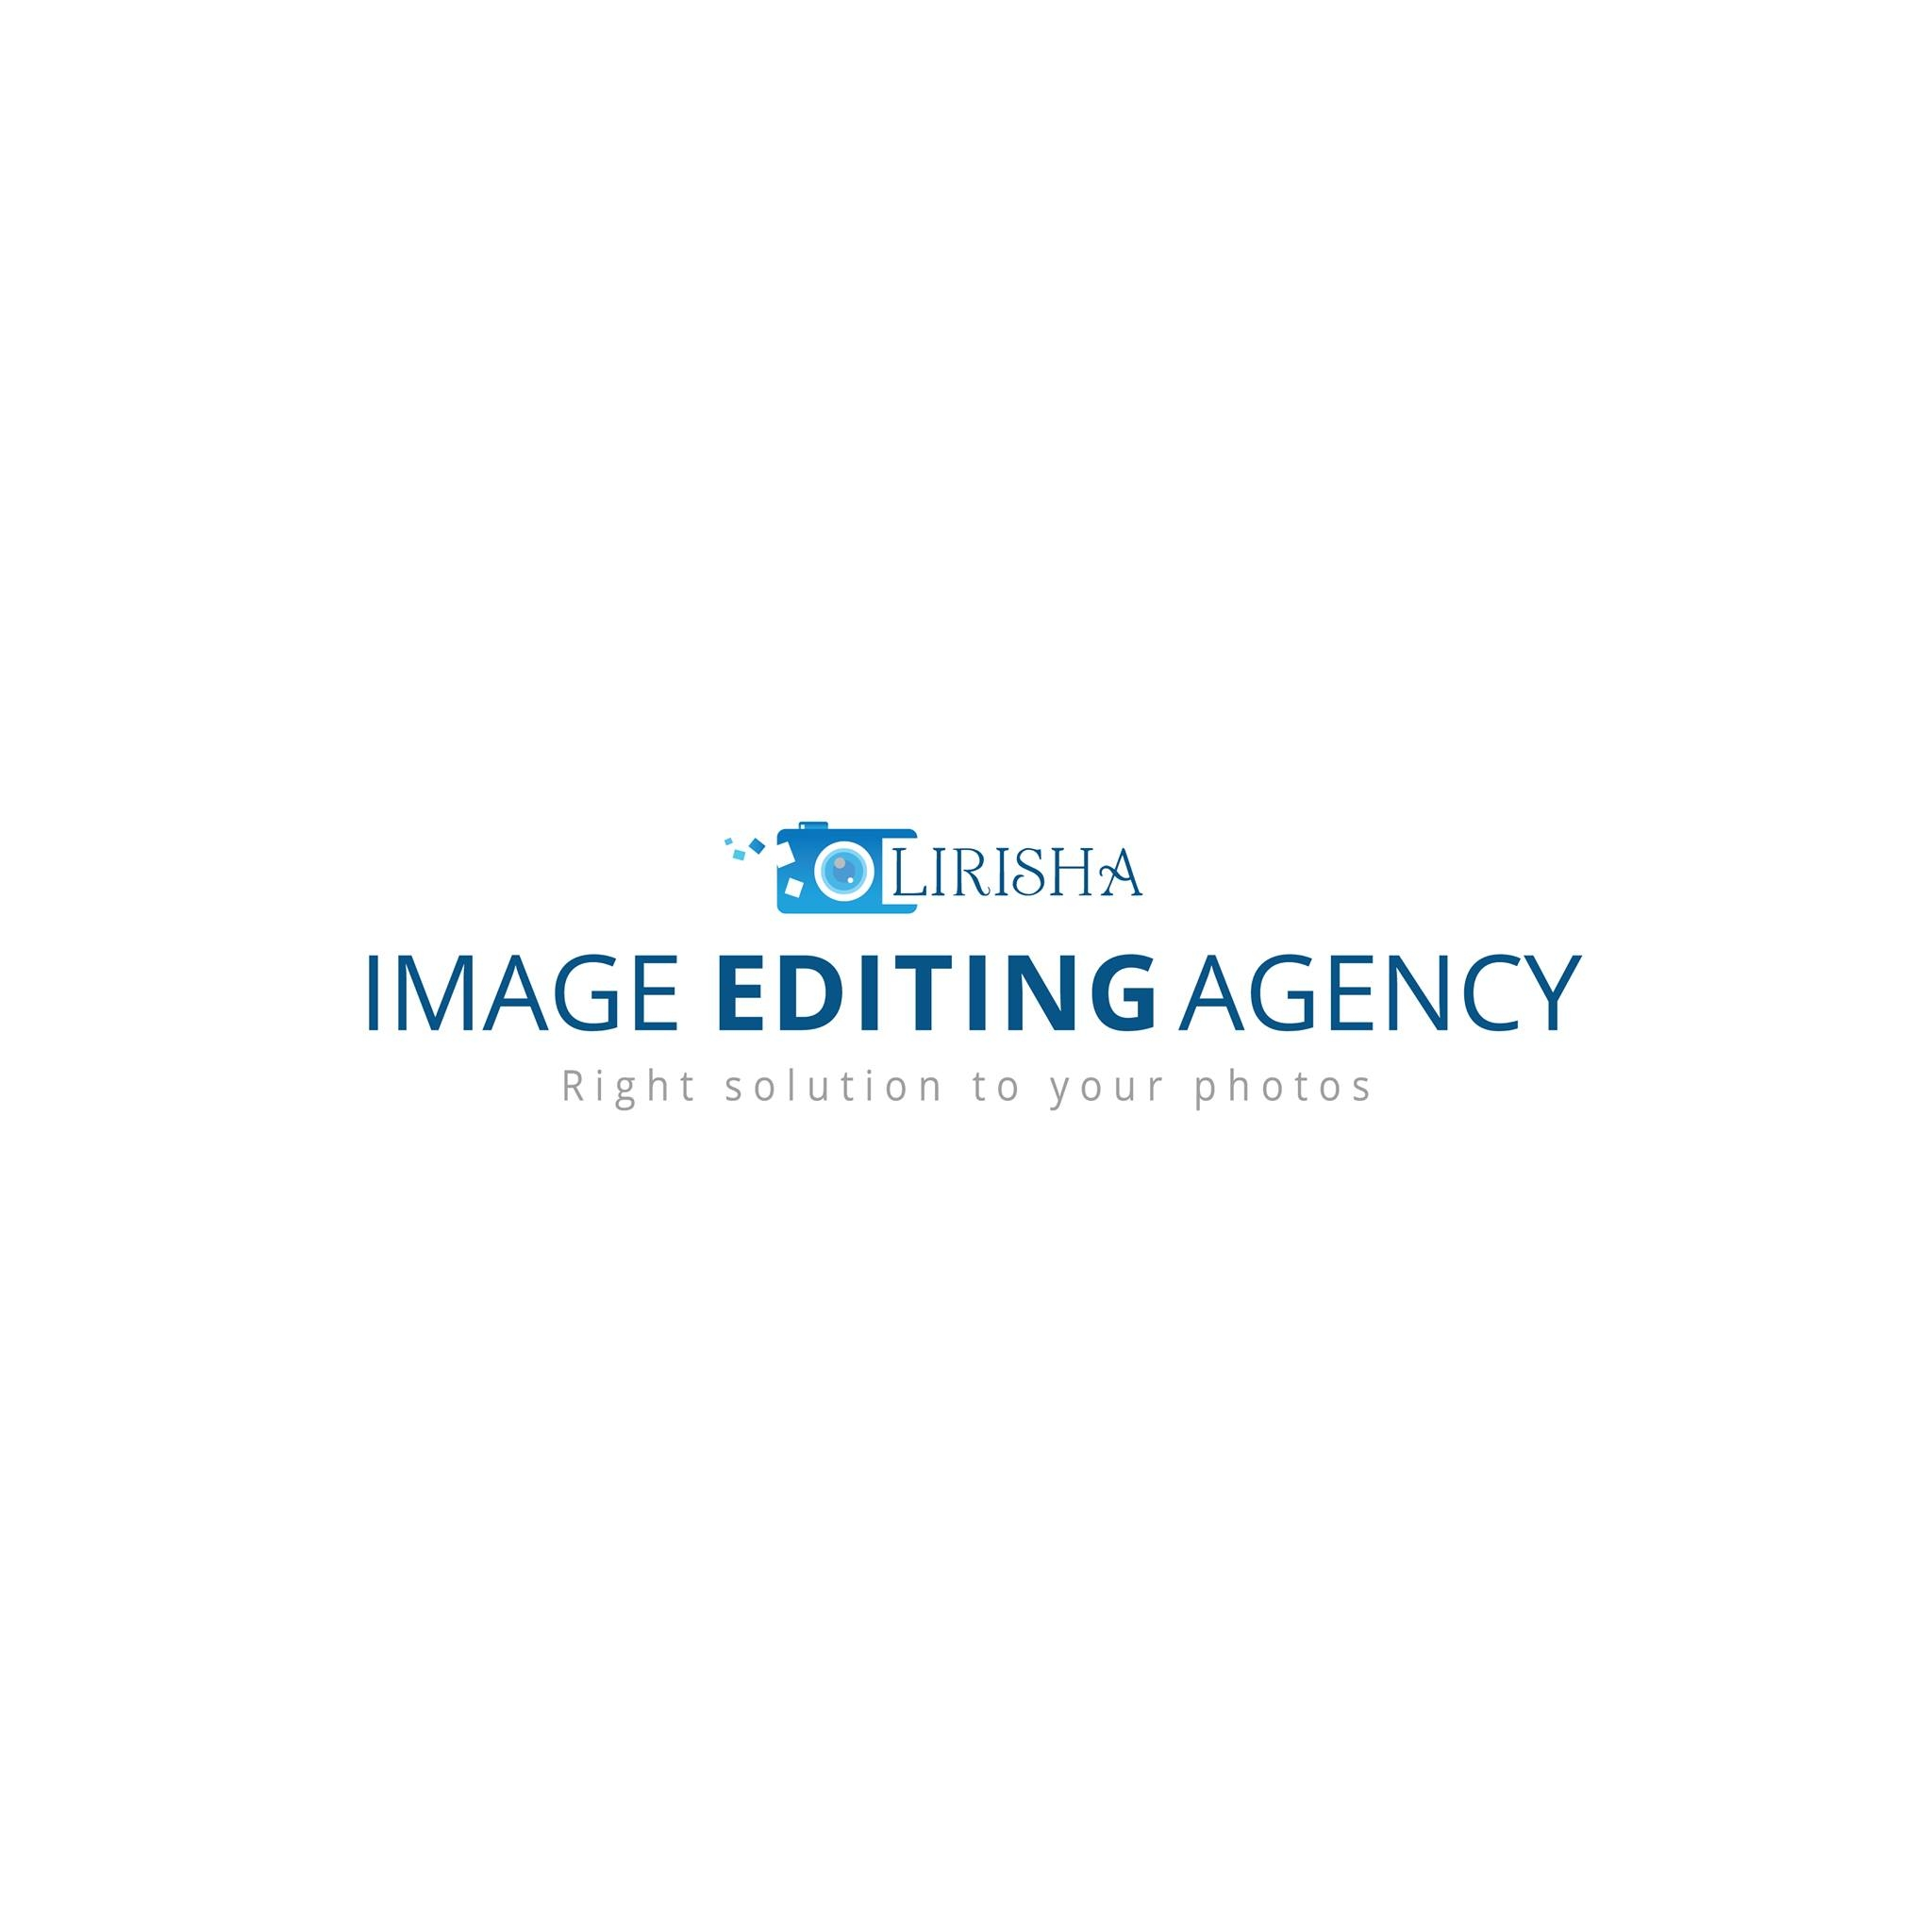 Imageediting Agency